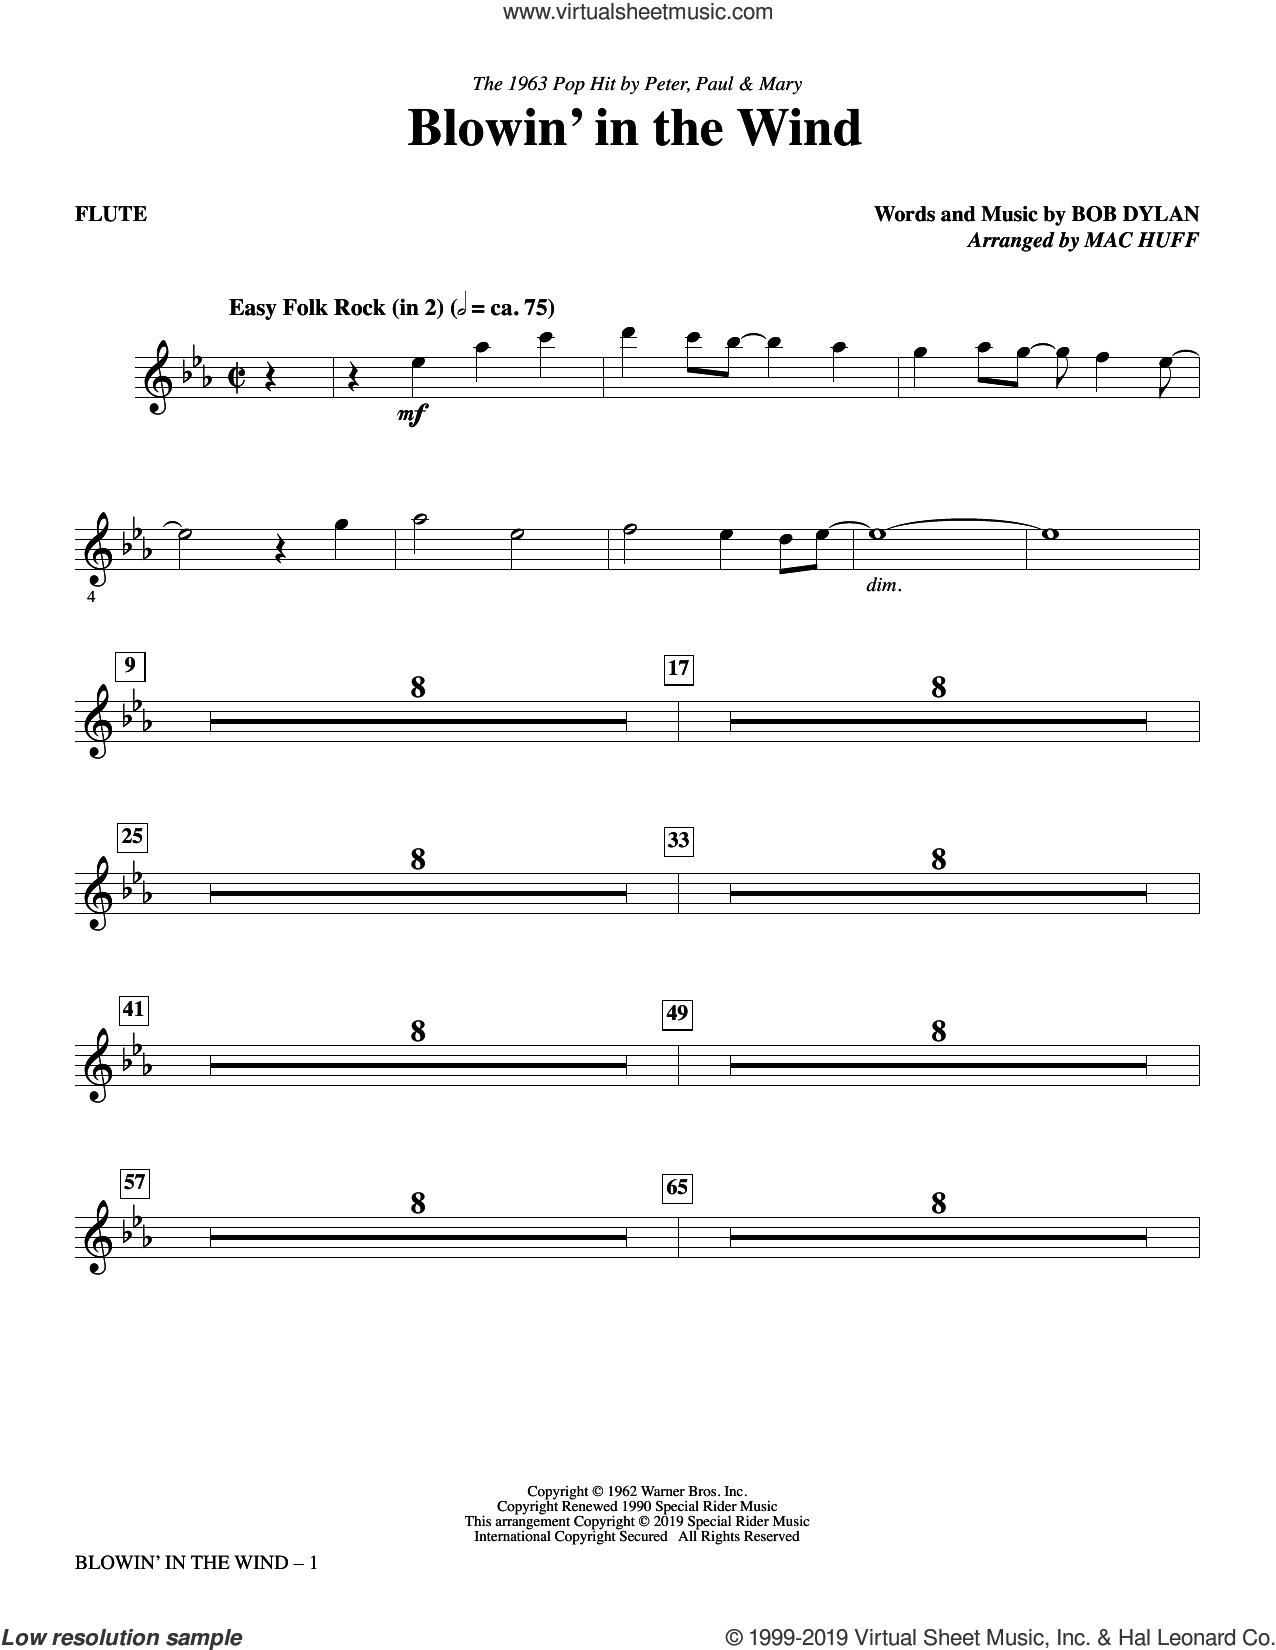 Blowin' in the Wind (arr. Mac Huff) (complete set of parts) sheet music for orchestra/band by Bob Dylan, Mac Huff, Peter, Paul & Mary and Stevie Wonder, intermediate skill level